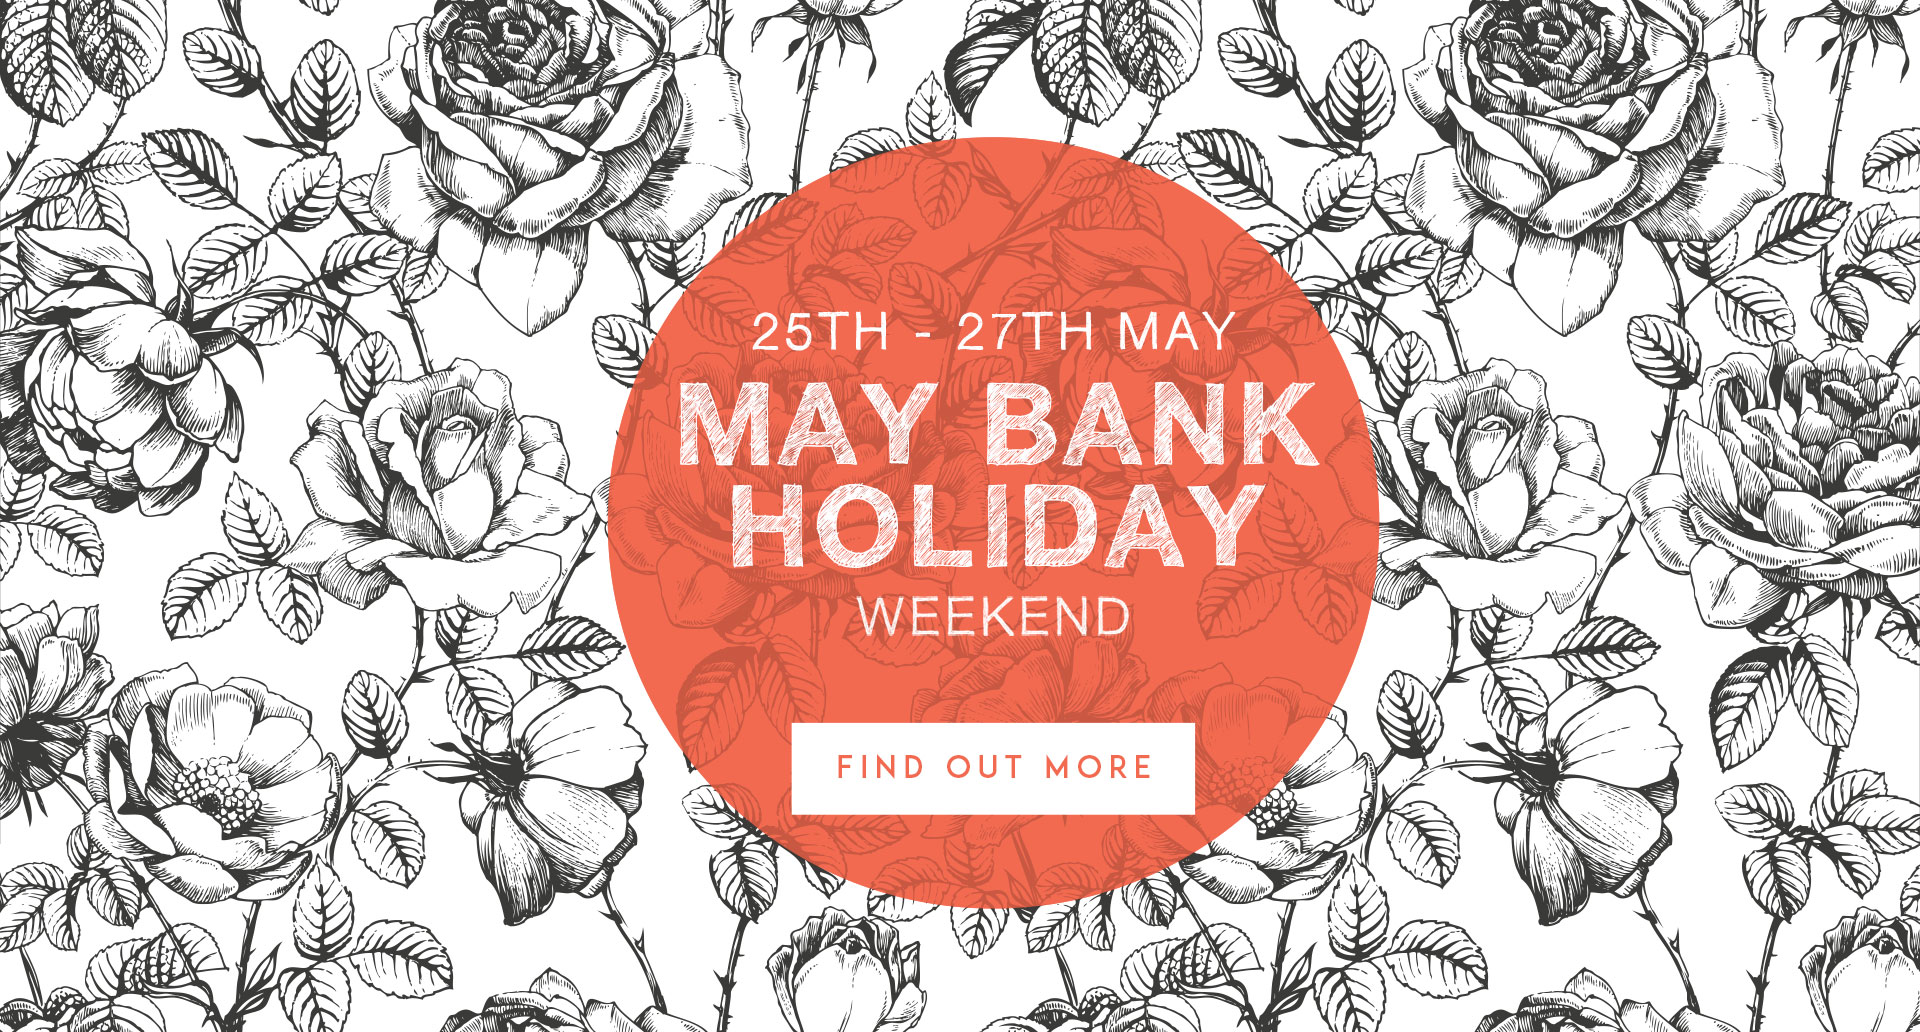 May Bank Holiday at The Crown & Sceptre